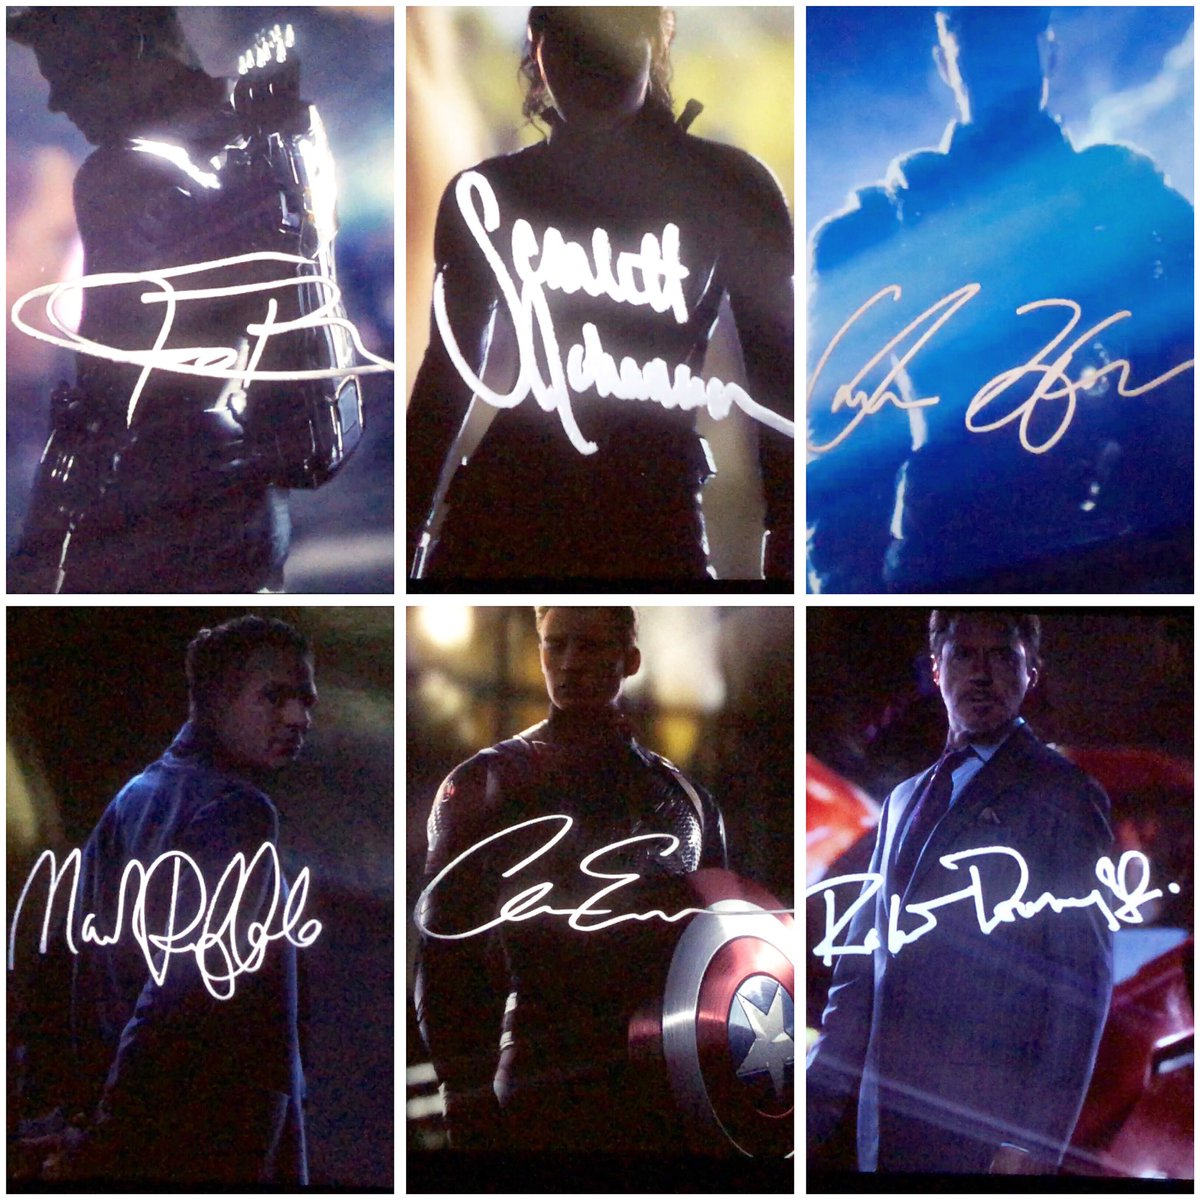 Handwriting is unique to every single person. Everyone has their own SIGNATURE #AvengersEndgame #signature #DontSpoilTheEndgame